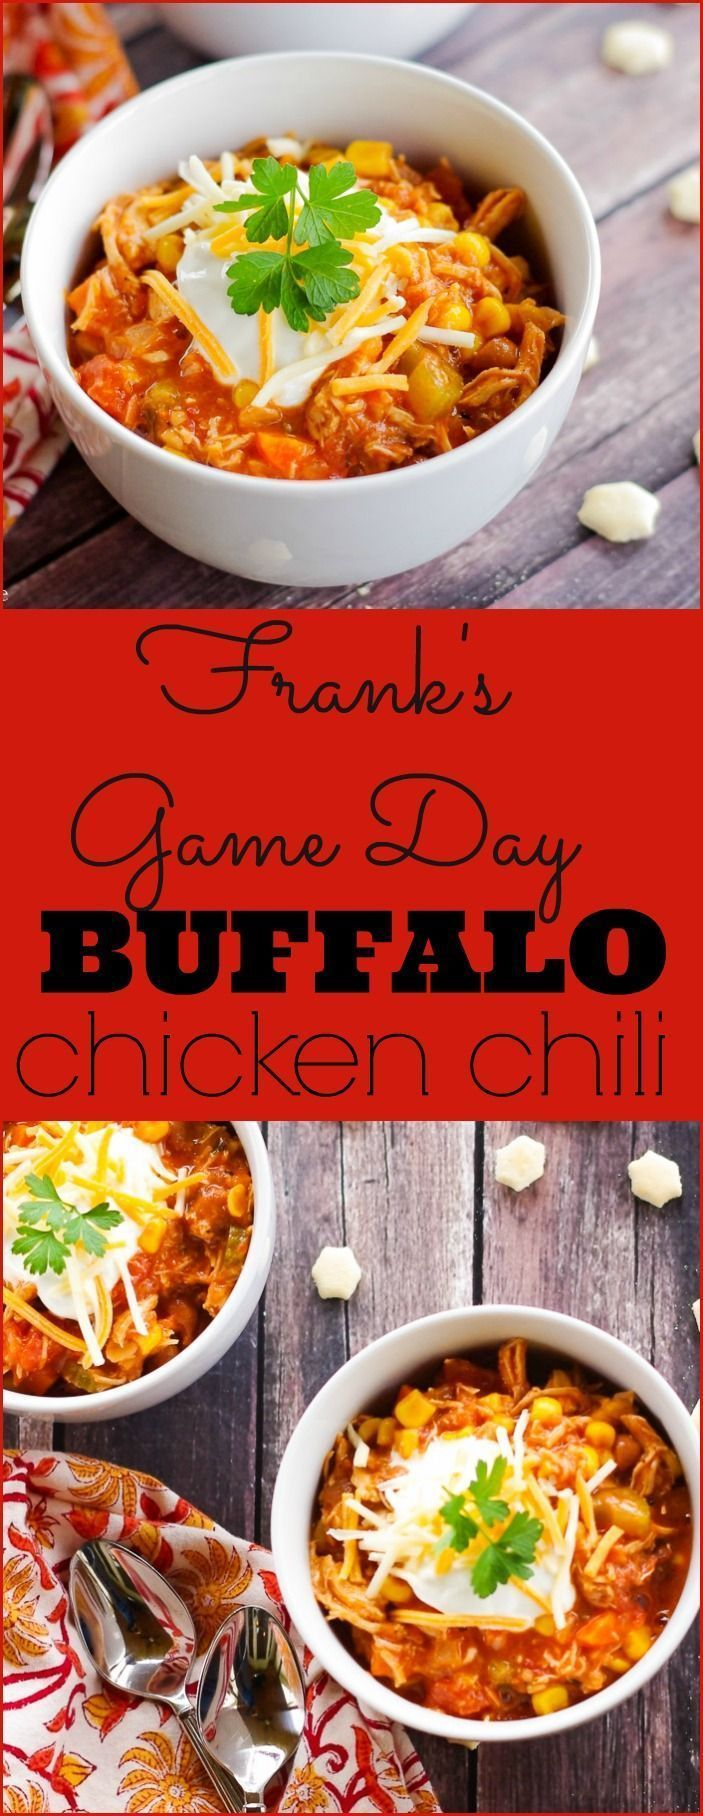 Frank's Game Day Buffalo Chicken Chili - Home & Plate #gamedayfood